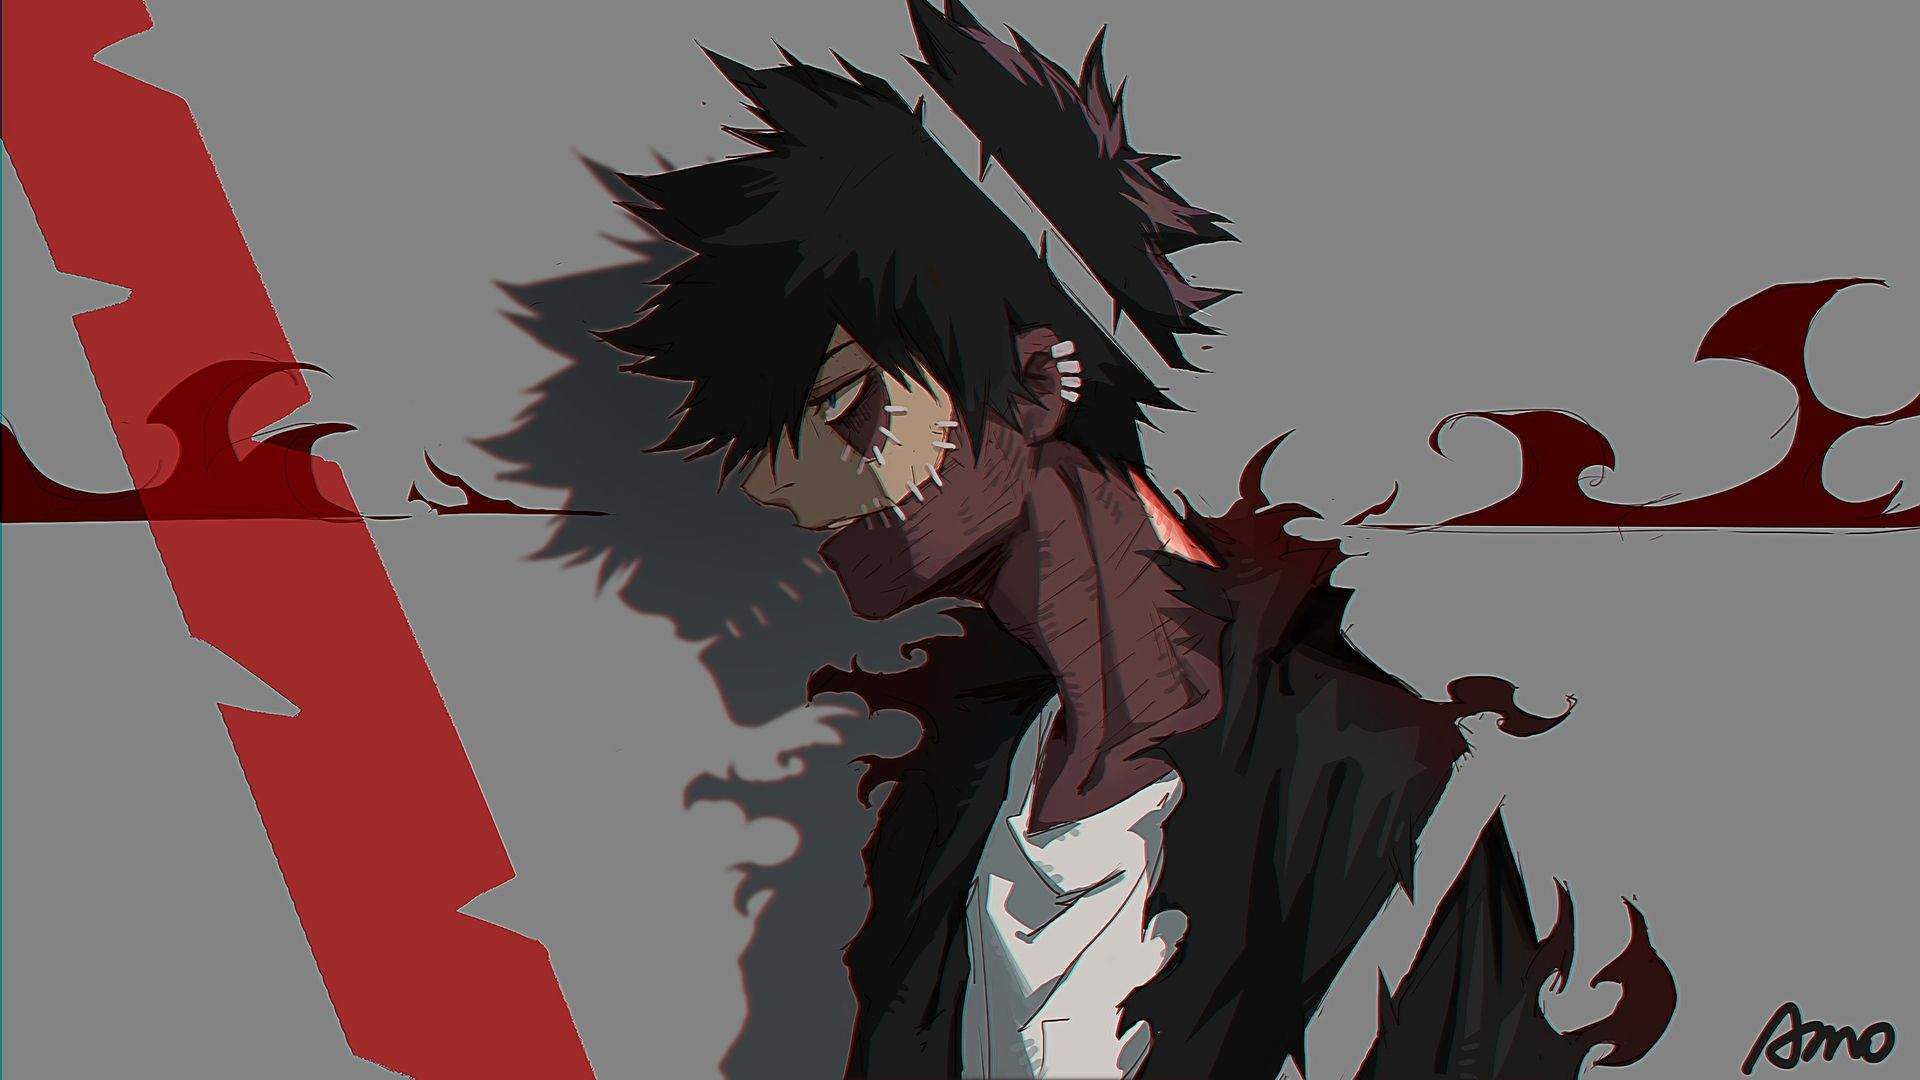 Dabi My Hero Academia Hd 1920x1080 C1323 Hero Wallpaper Anime Images My Hero Academia